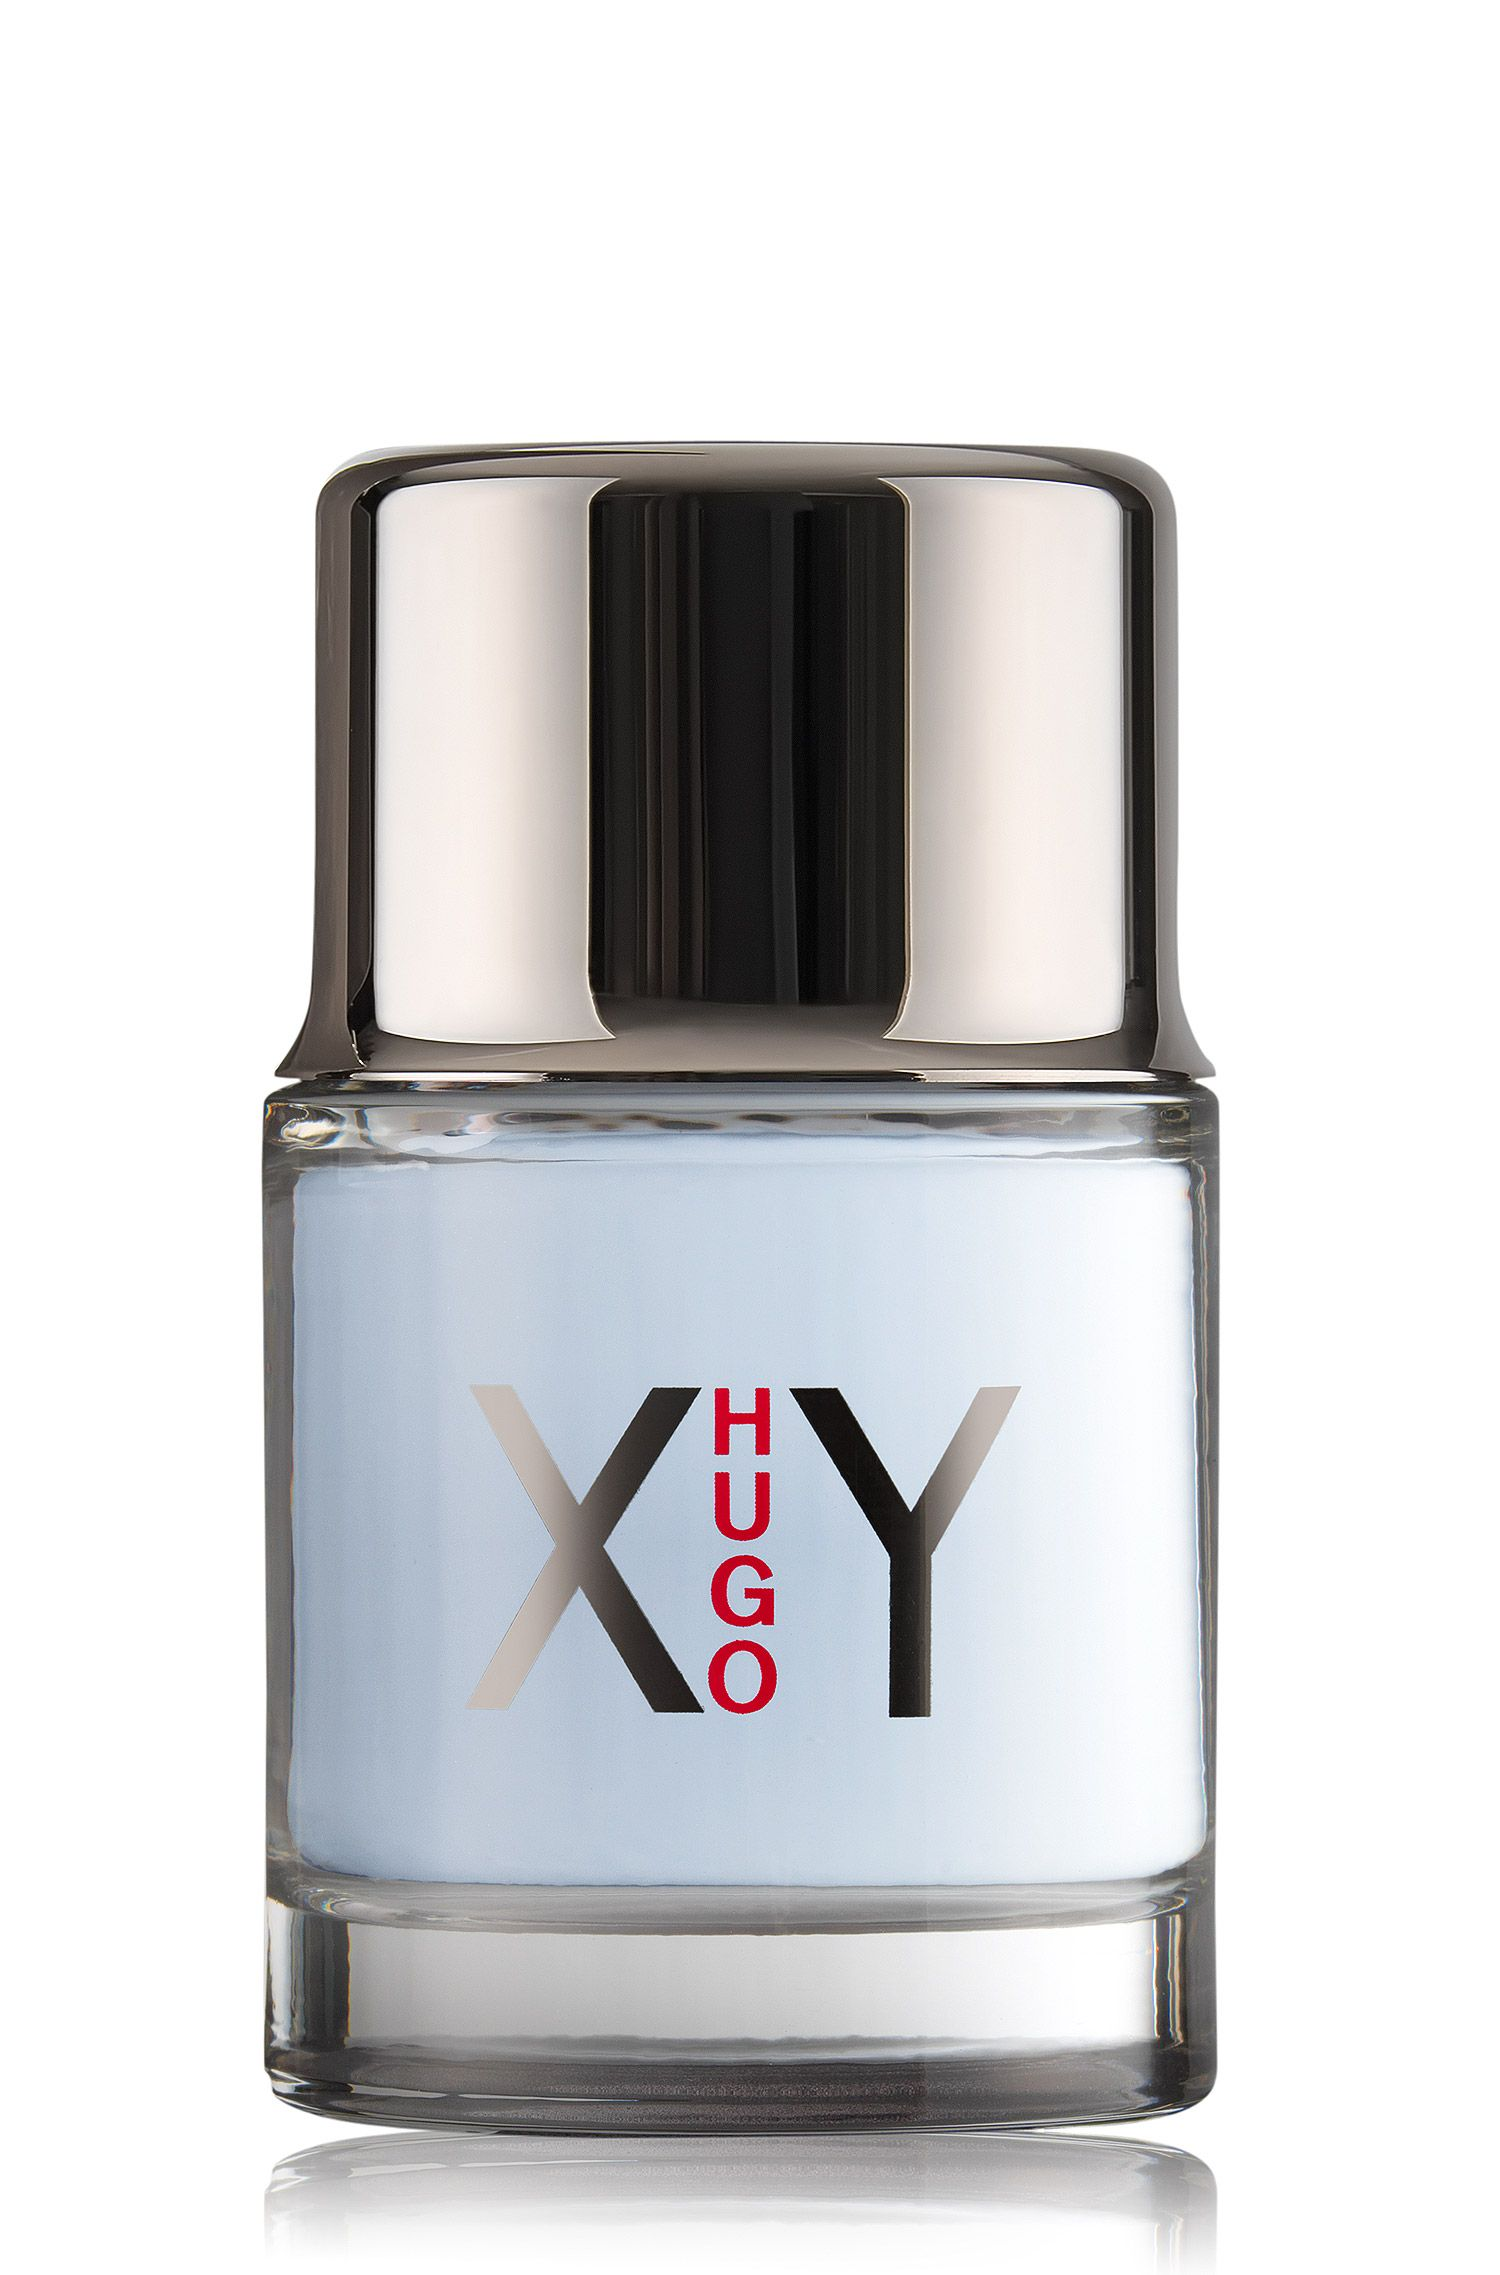 HUGO XY Eau de Toilette 60 ml